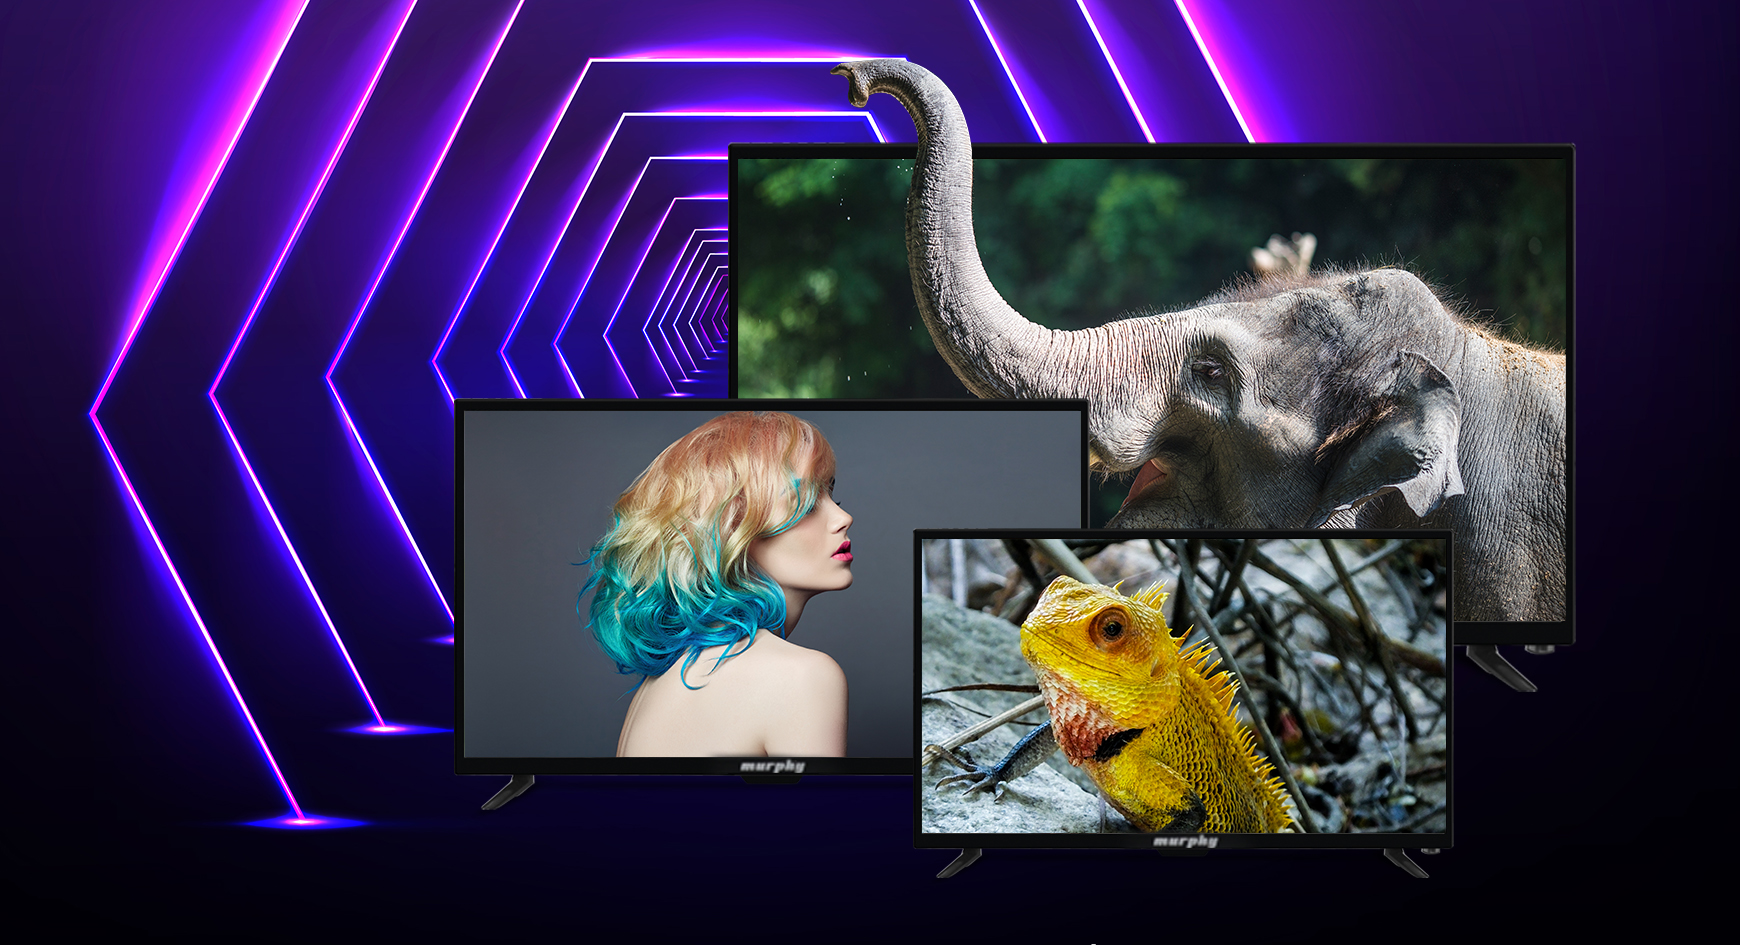 How Smart TVs are better than ordinary LED TVs?